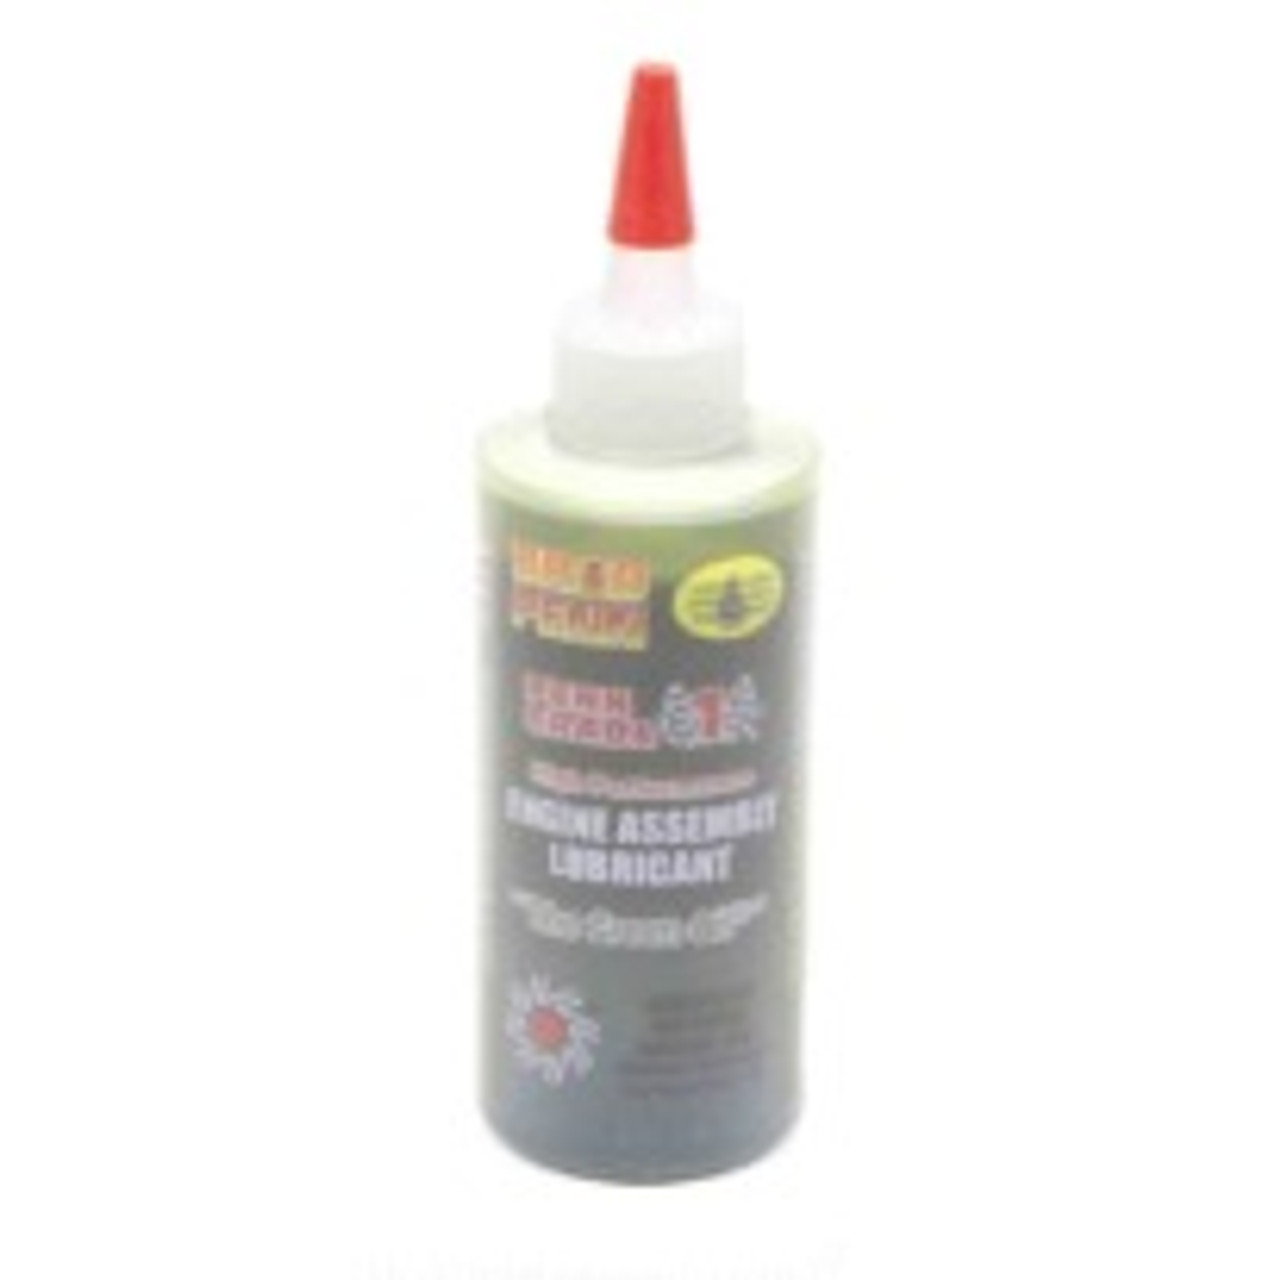 BPO571-7105S, ENGINE ASSEMBLY LUBE6OZ BOTTLE